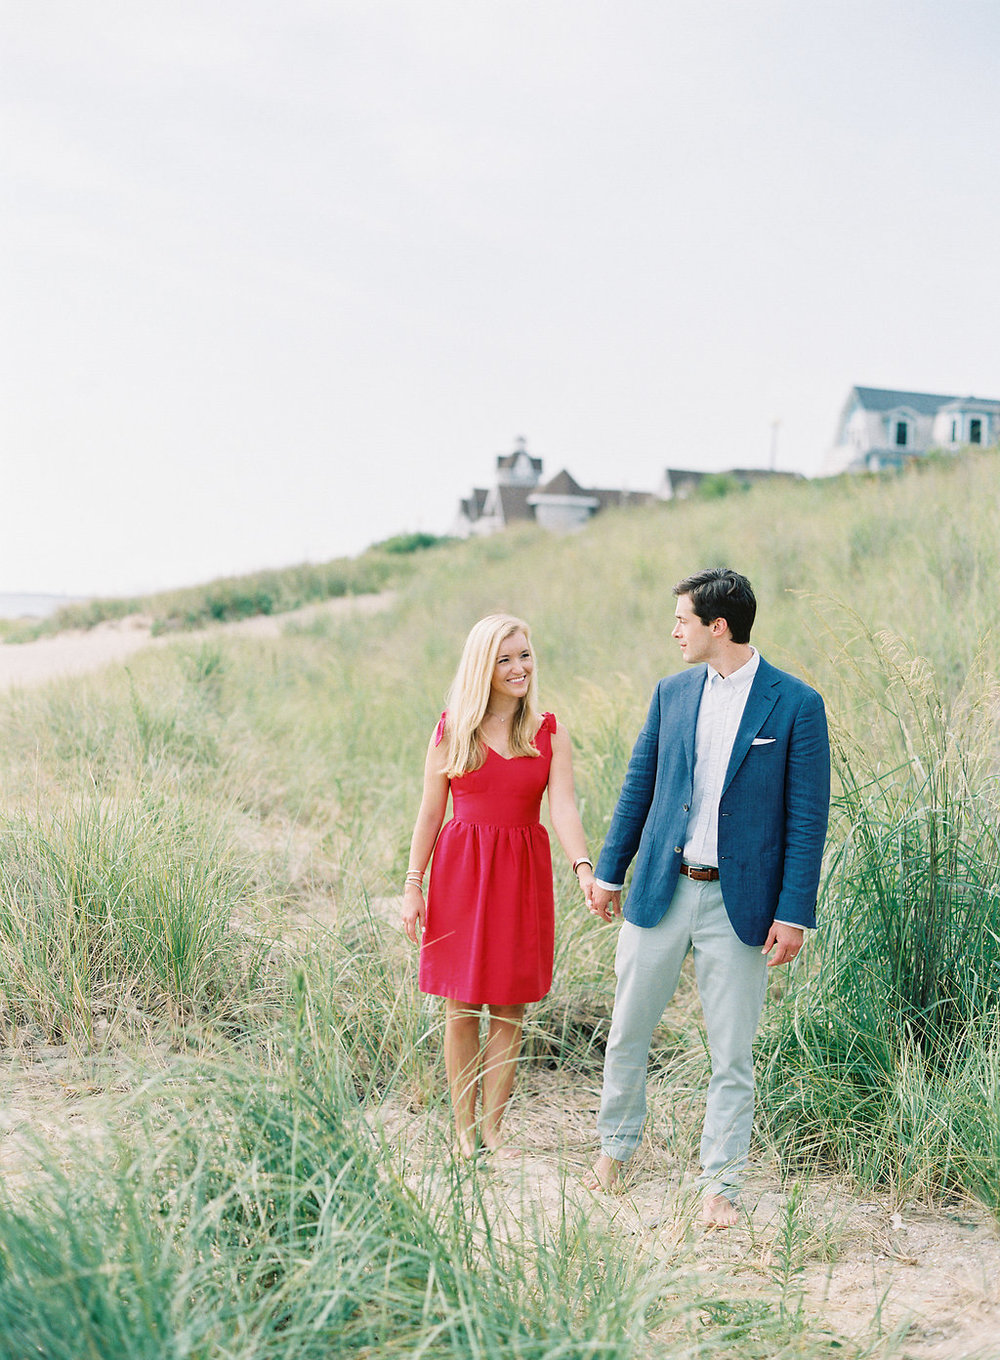 Marthas-Vineyard-Film-Photography-Anniversary-Session-3.jpg